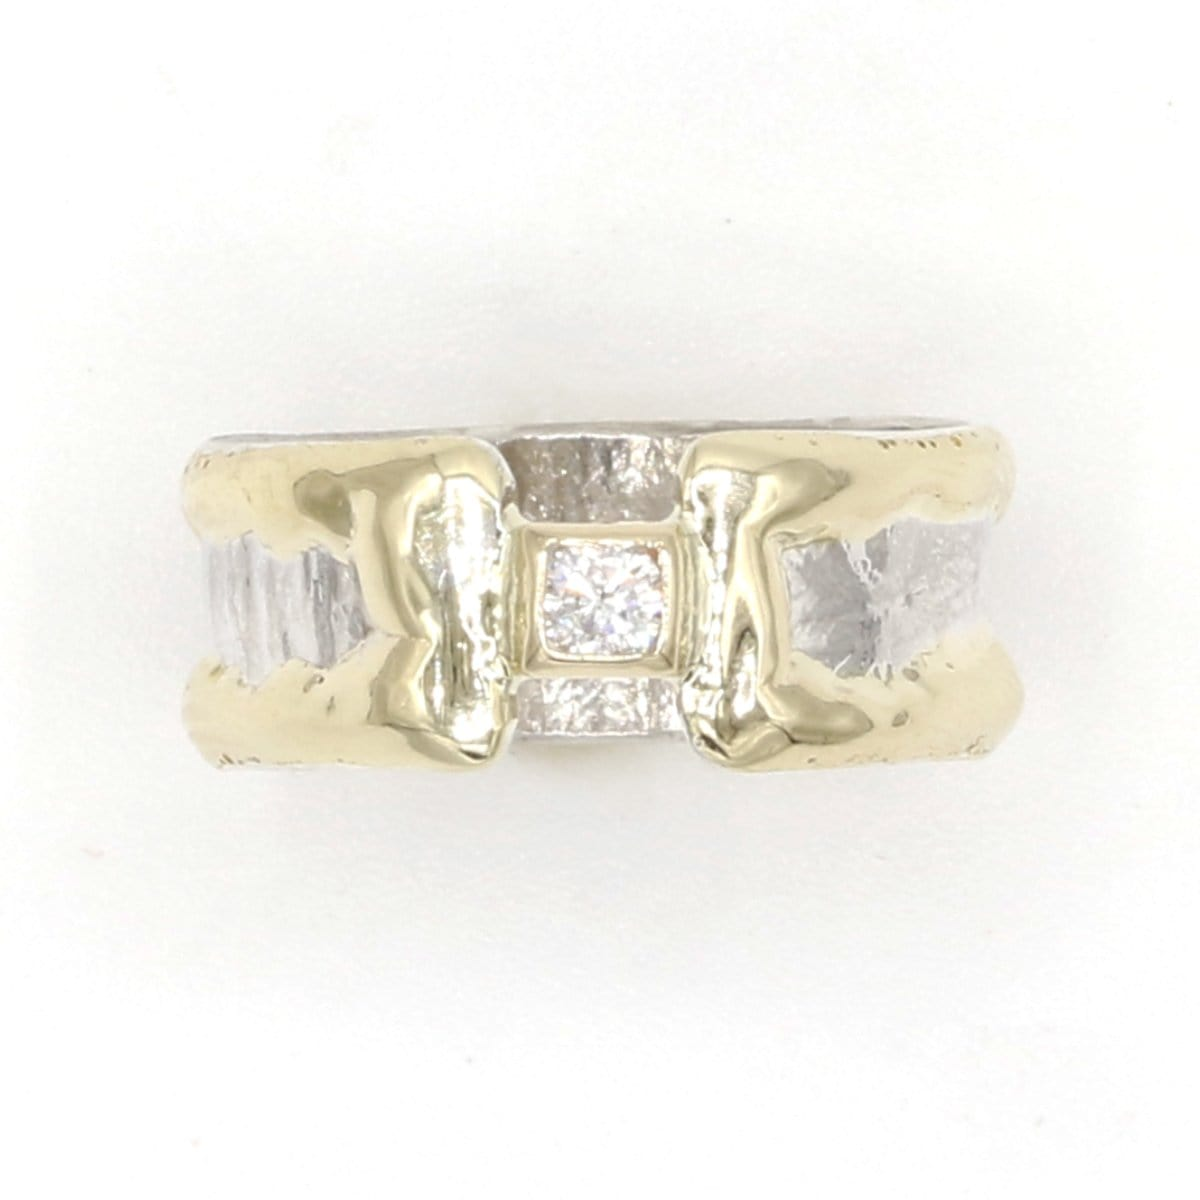 14K Gold & Crystalline Silver Diamond Ring - 37389-Fusion Designs-Renee Taylor Gallery